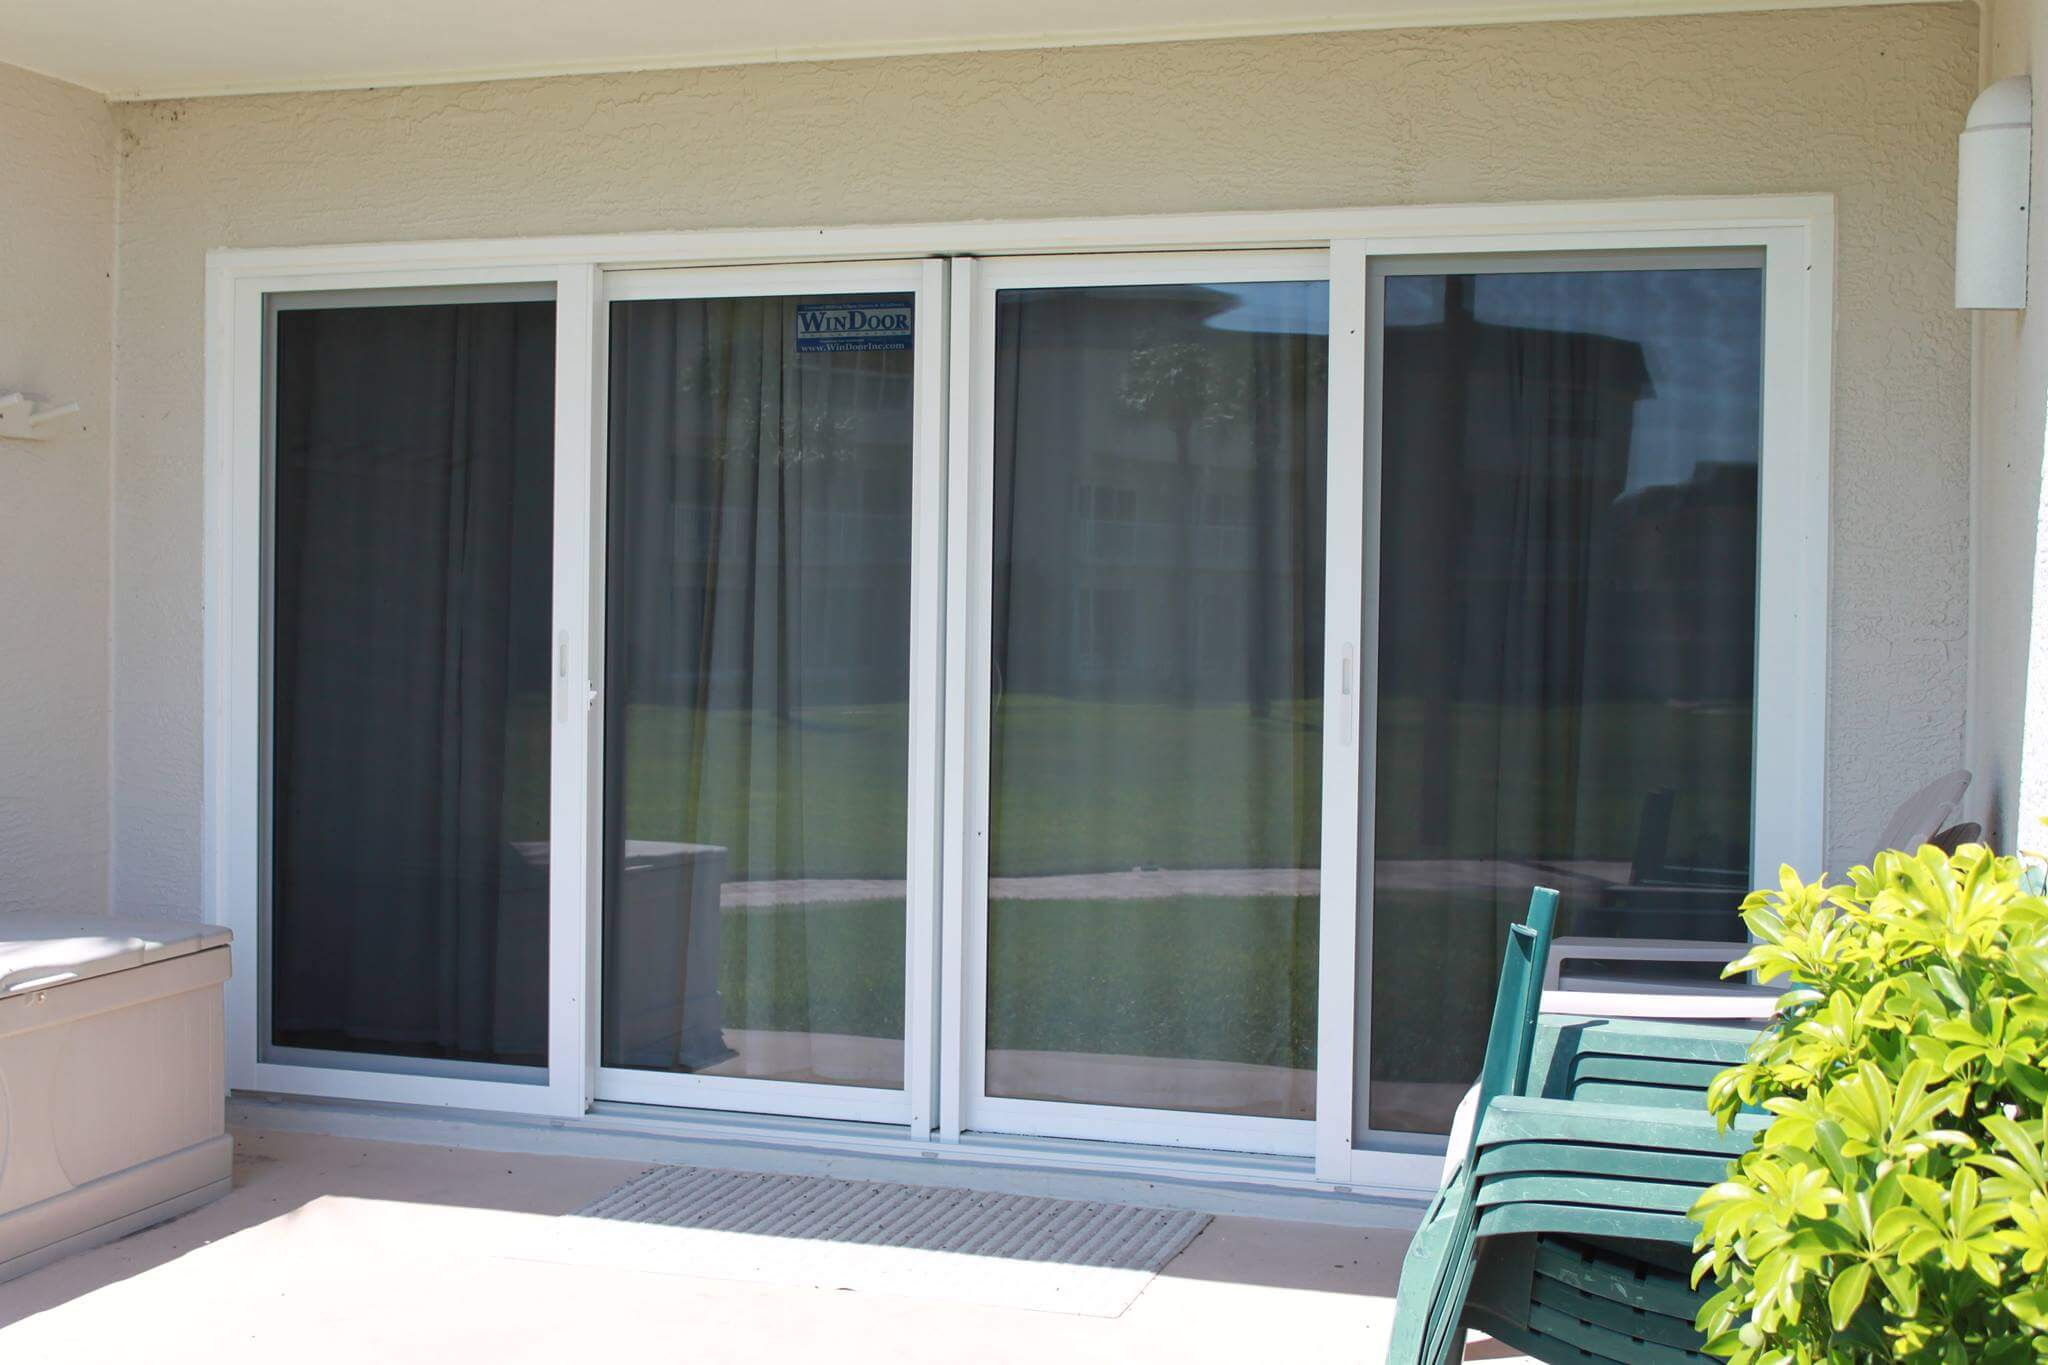 Gulf stream glass of volusia inc glass for your home or business general information planetlyrics Choice Image